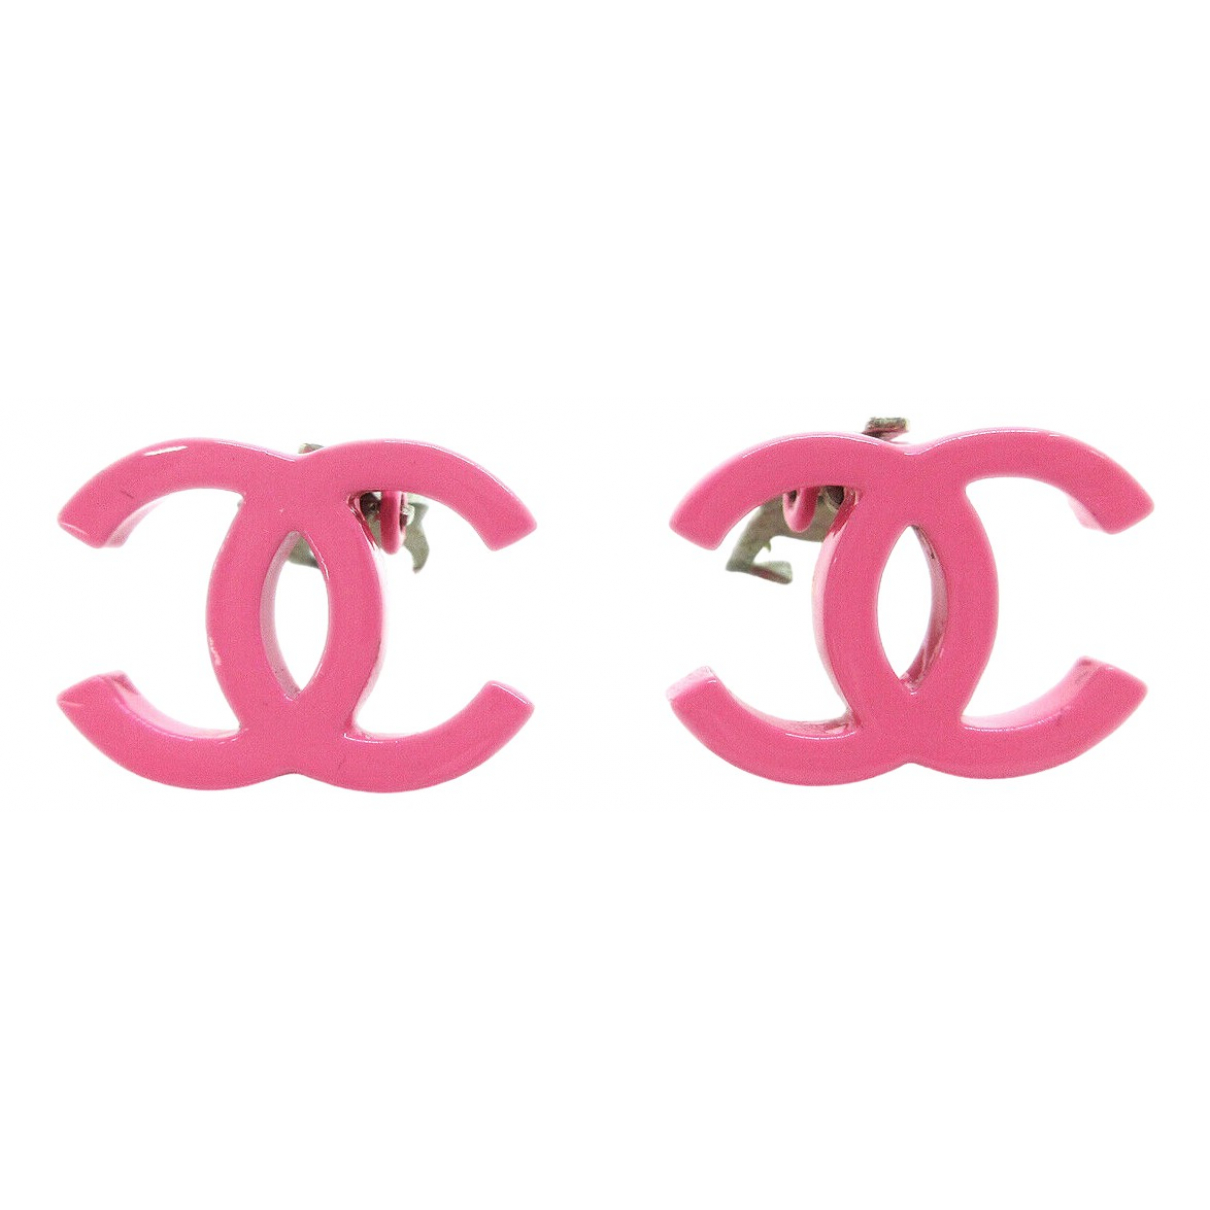 Chanel \N OhrRing in  Rosa Metall